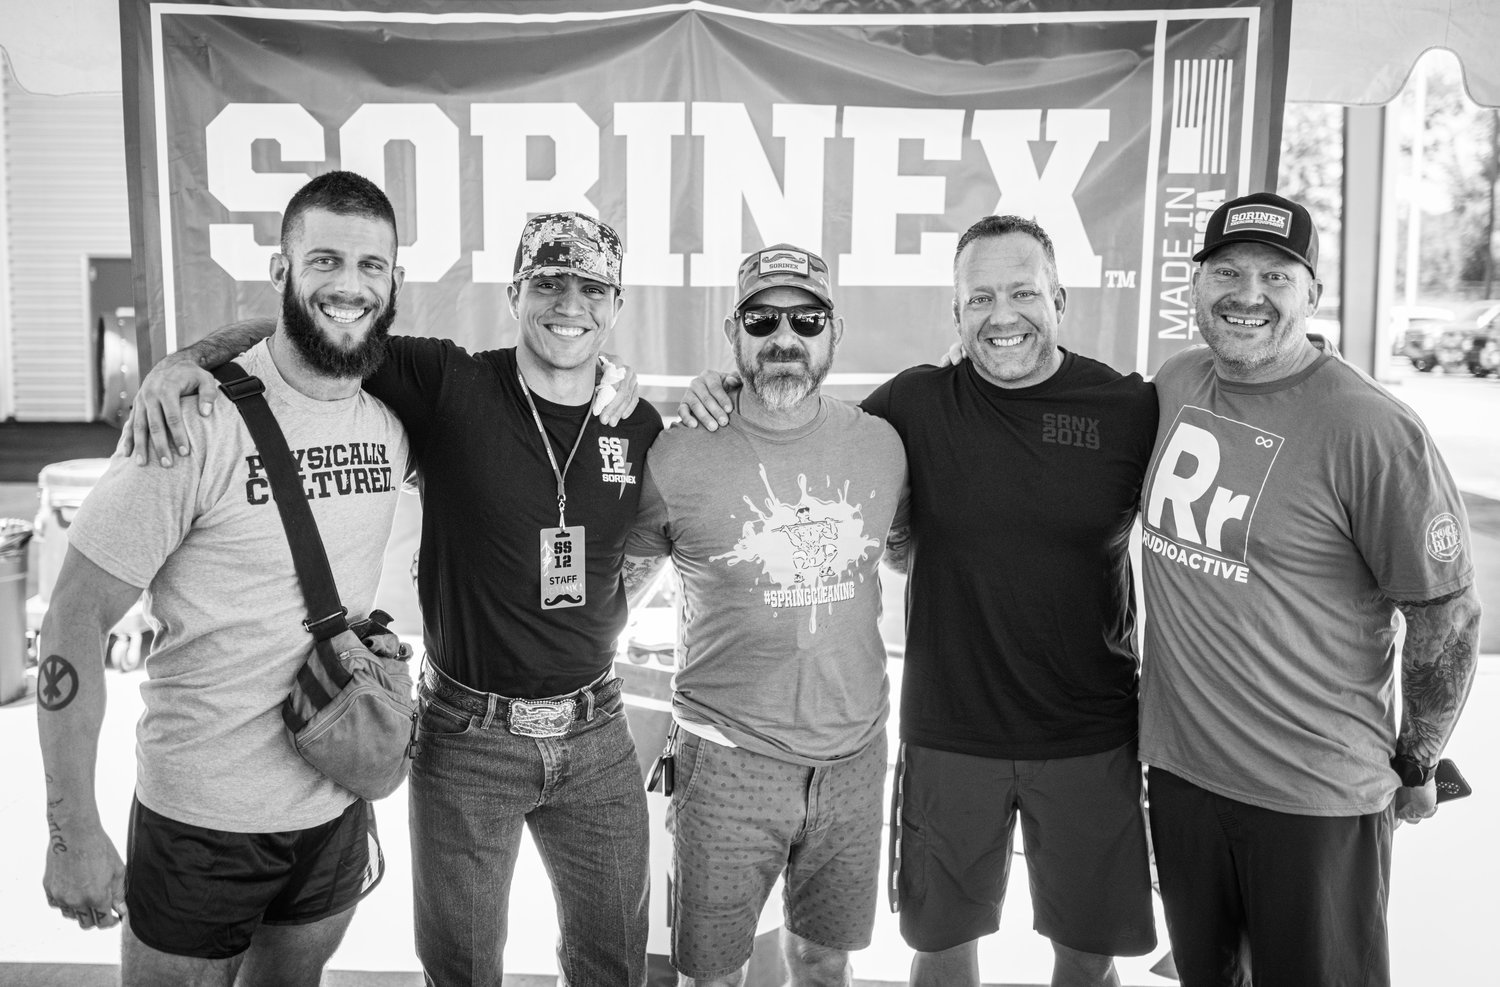 From left to right: Terrence Mitchell (IG: @mitchellstrength), Brady, Duncan Butler (IG: @o_k_a_y_1_2_0_2), John Folkert (IG: johnfolkert959), Derek Woodske (IG: @derekwoodske).